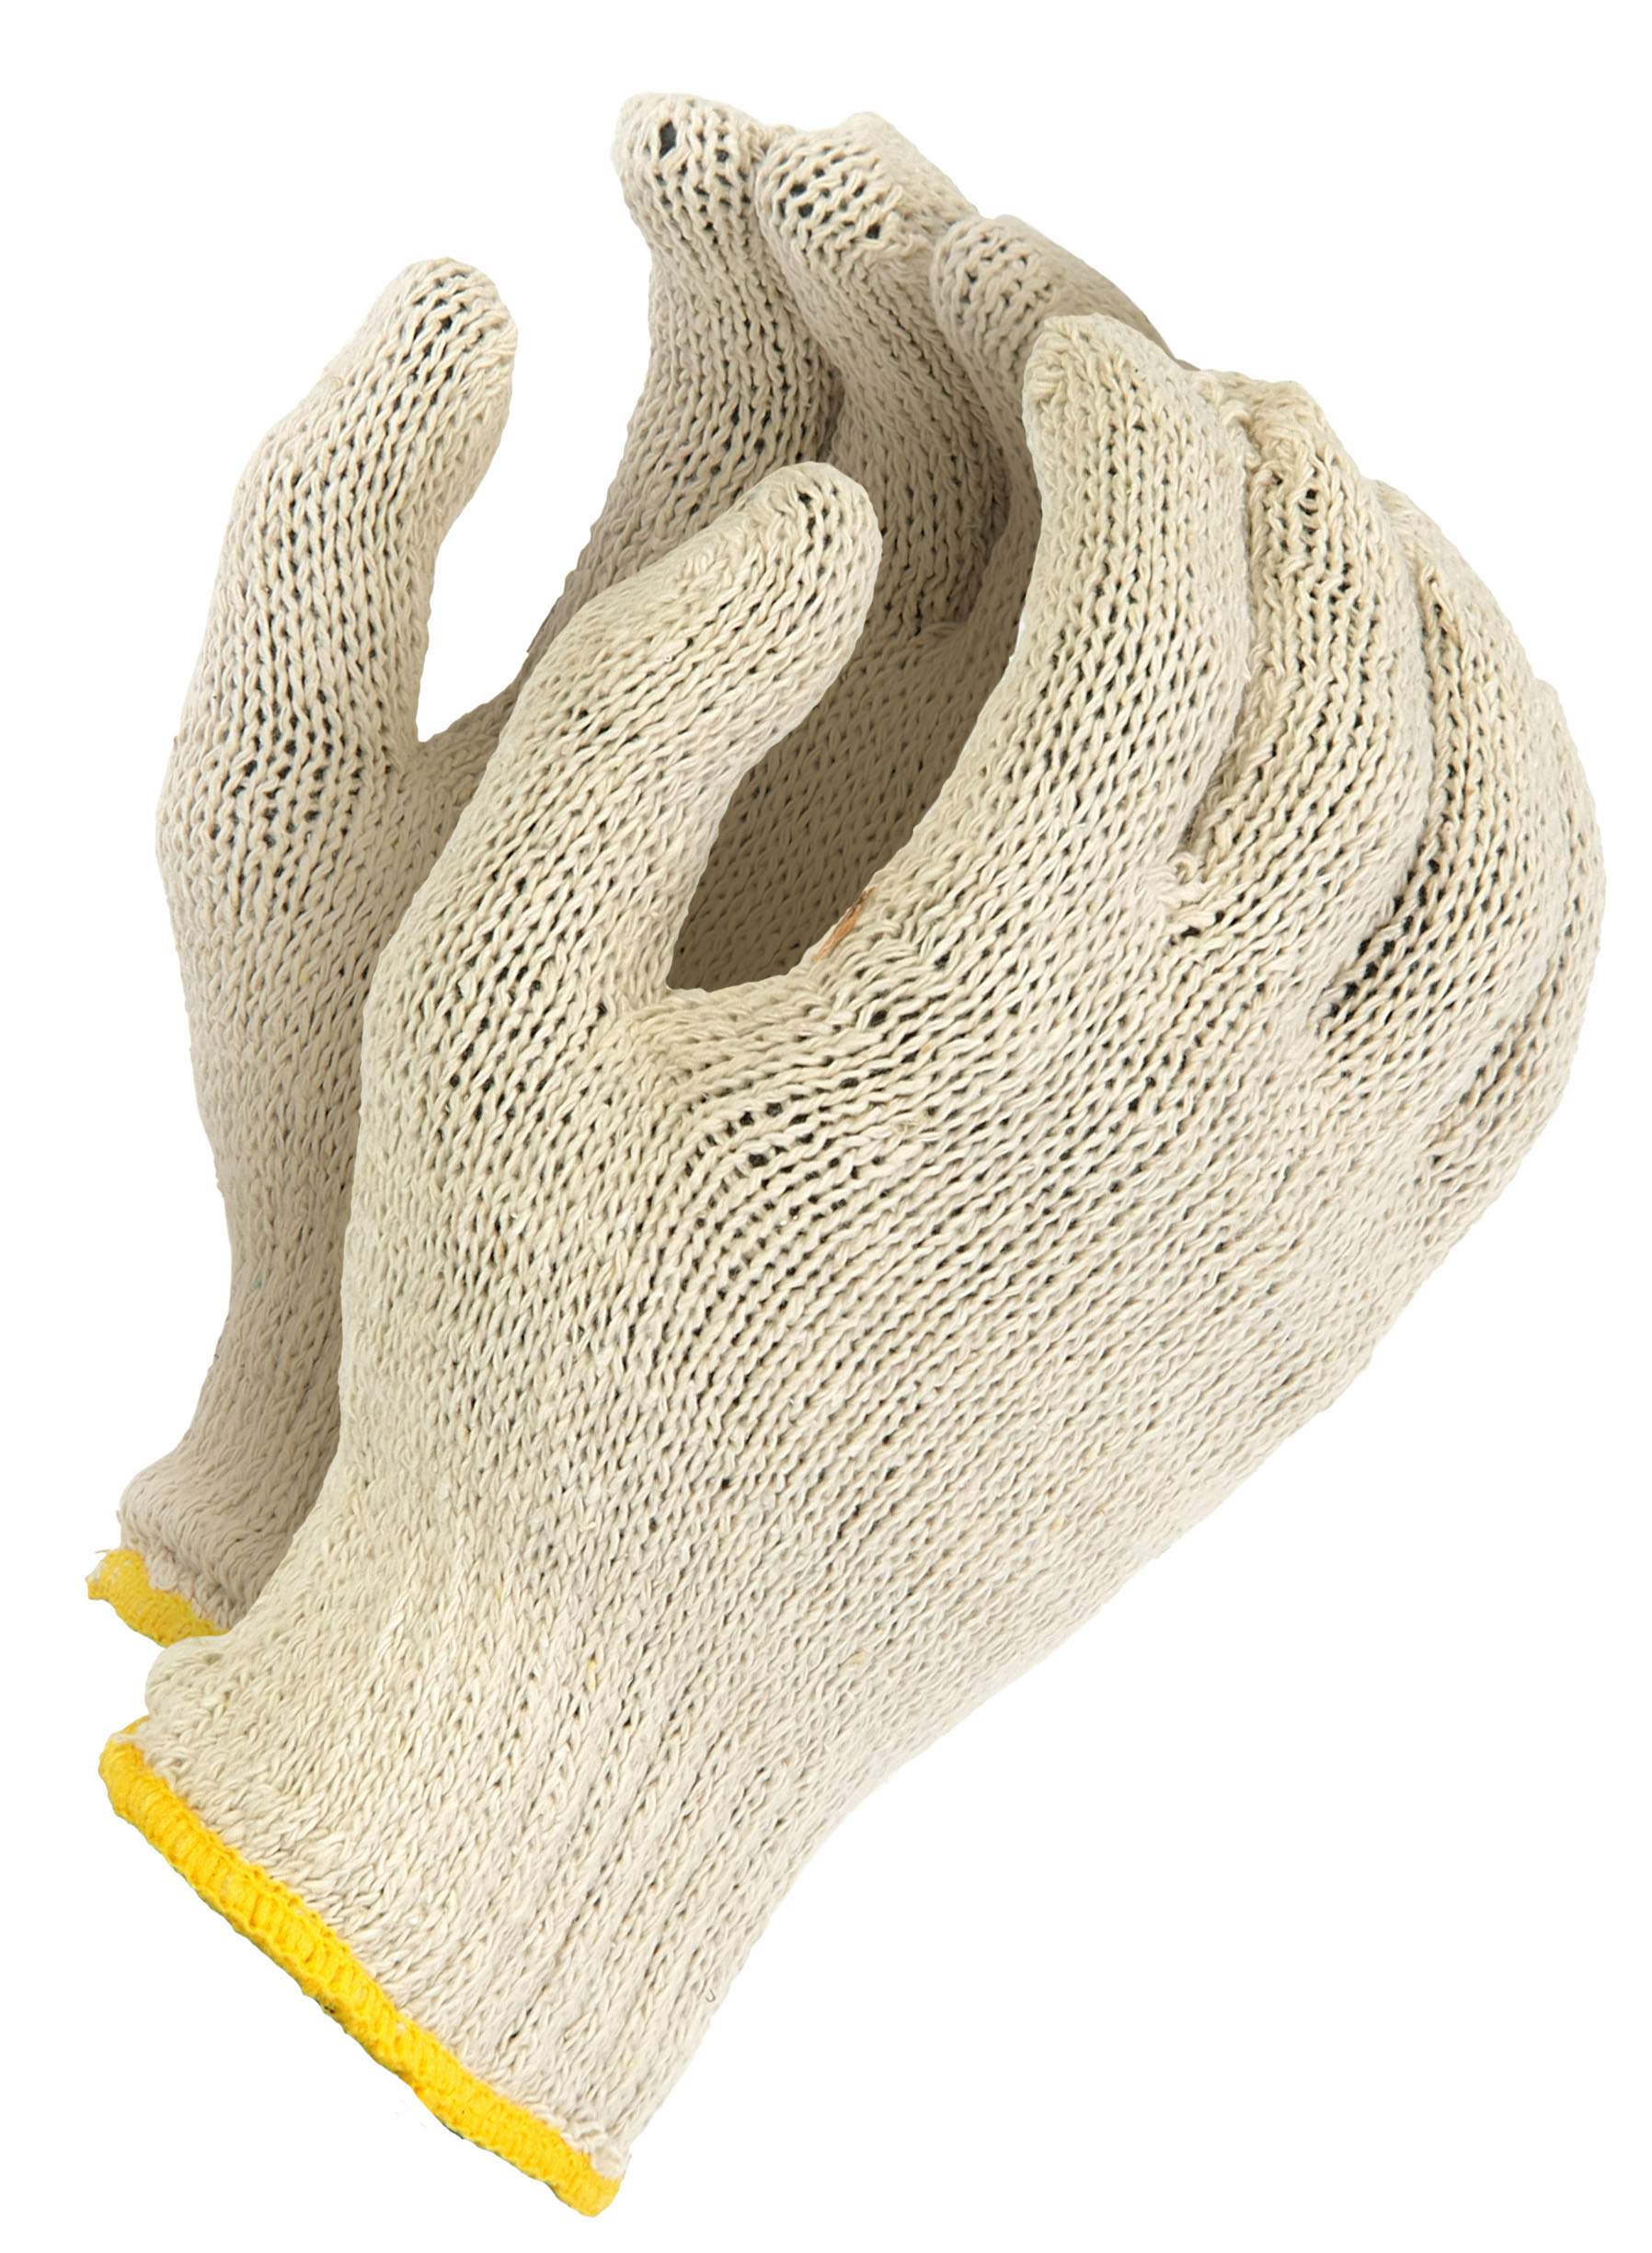 Safety Wear Hand Protection Cotton Liner Econo Gloves